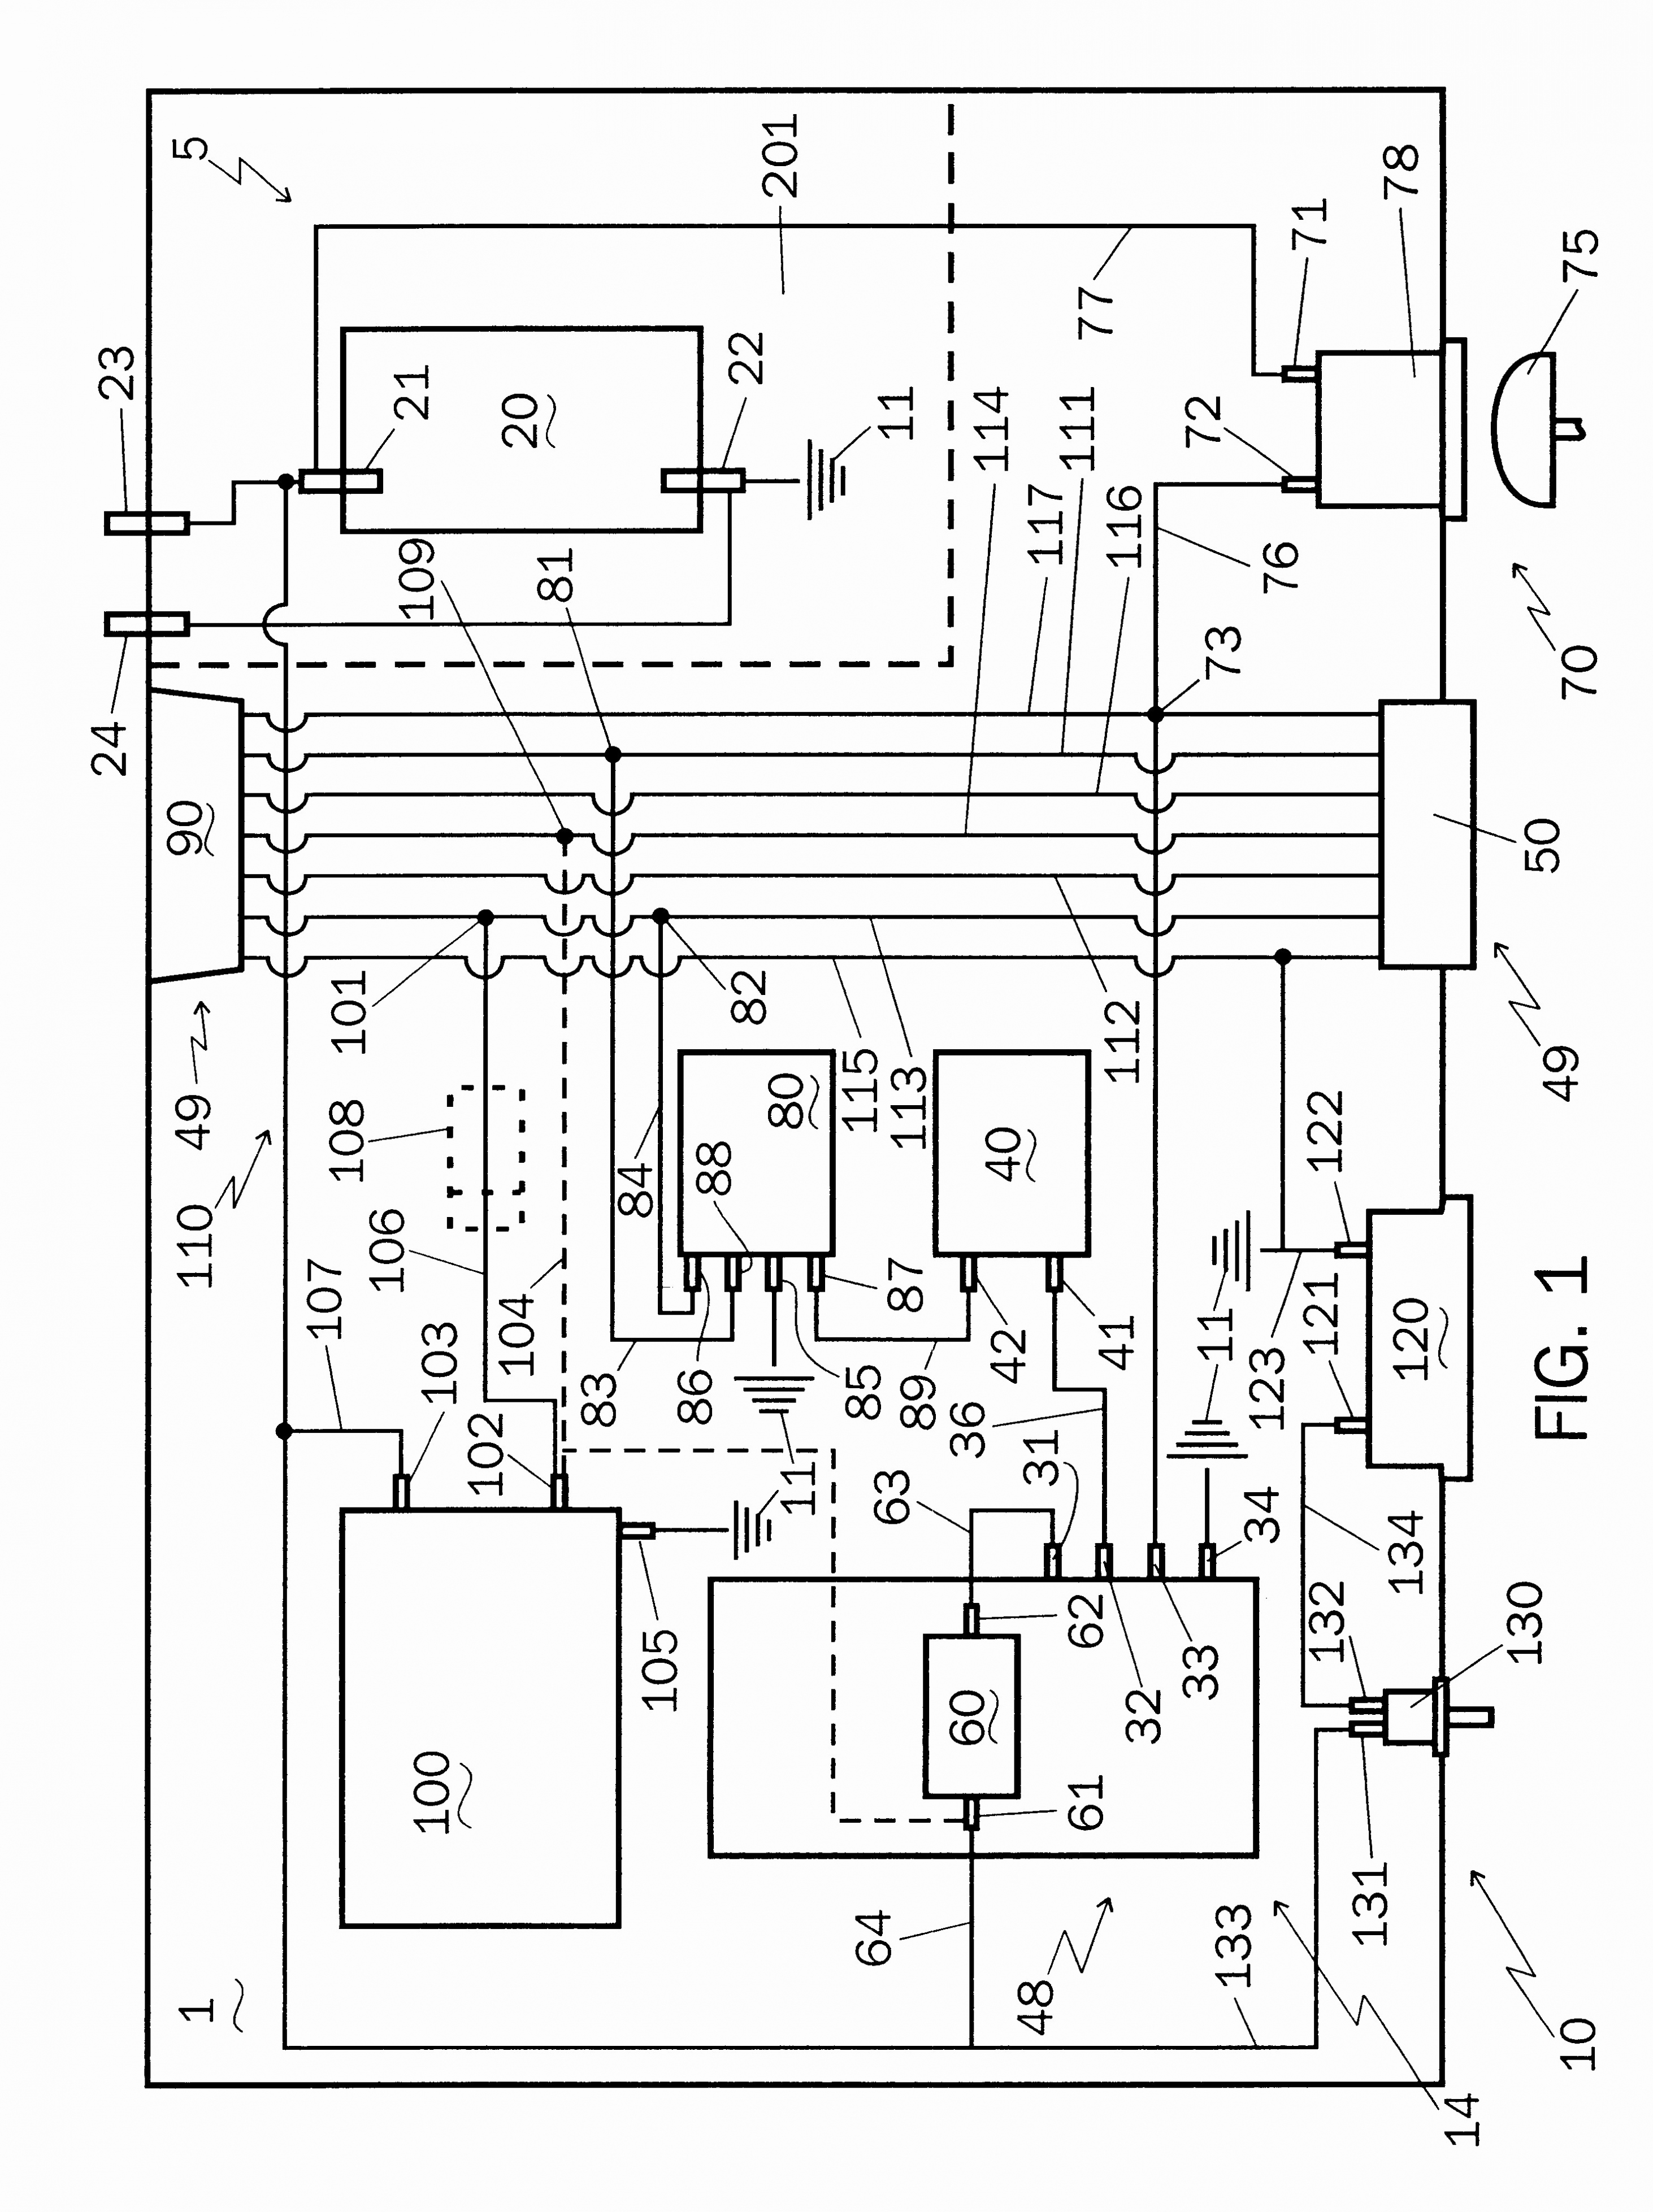 Wiring Diagram For Brake Controller New 50 Best Tekonsha Brake - Brake Controller Wiring Diagram